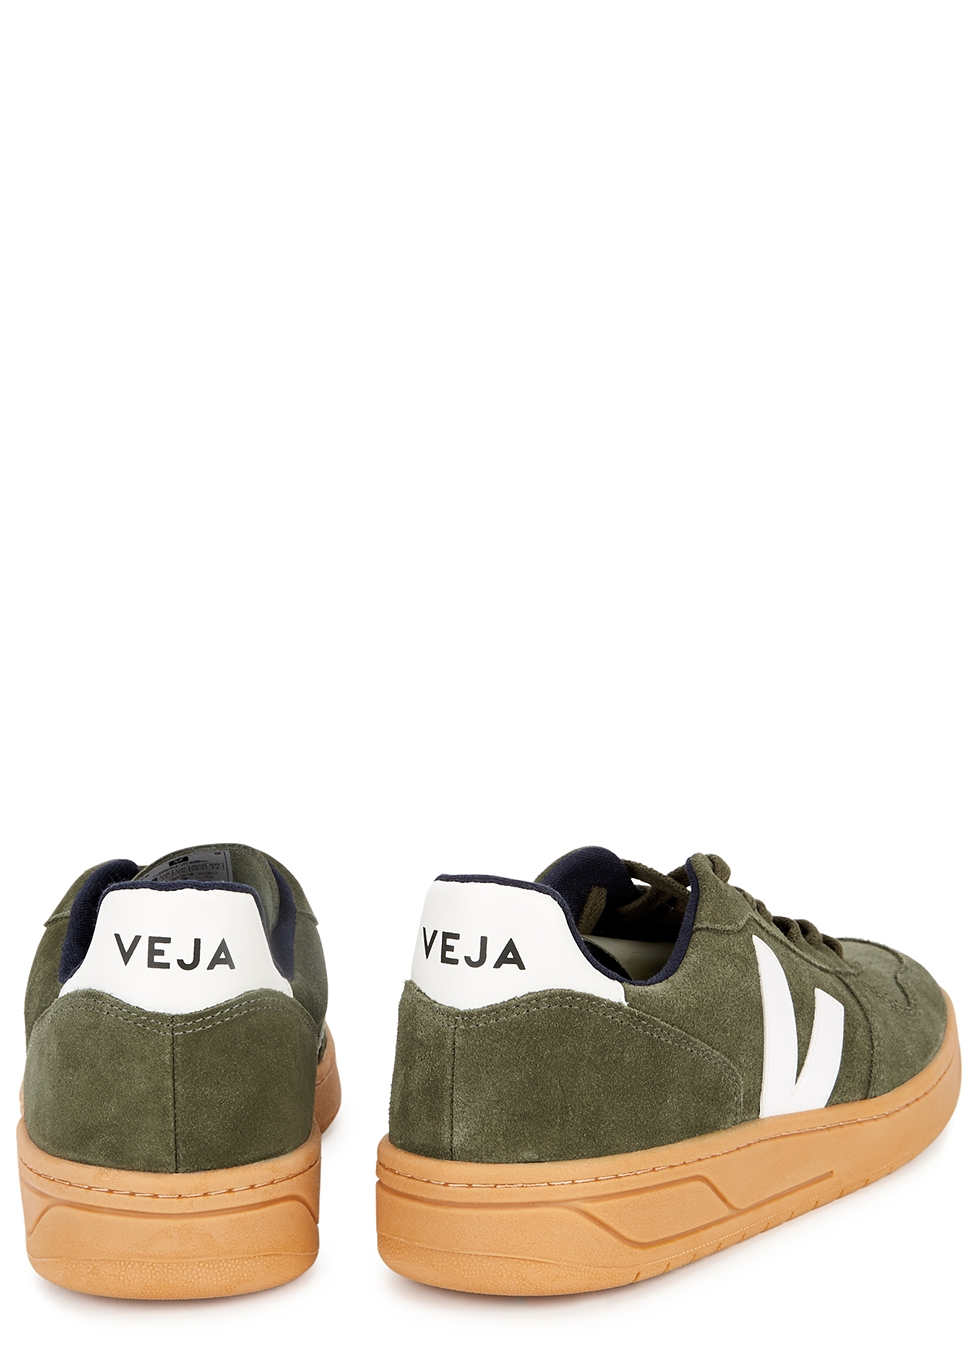 Veja V-10 army green suede sneakers